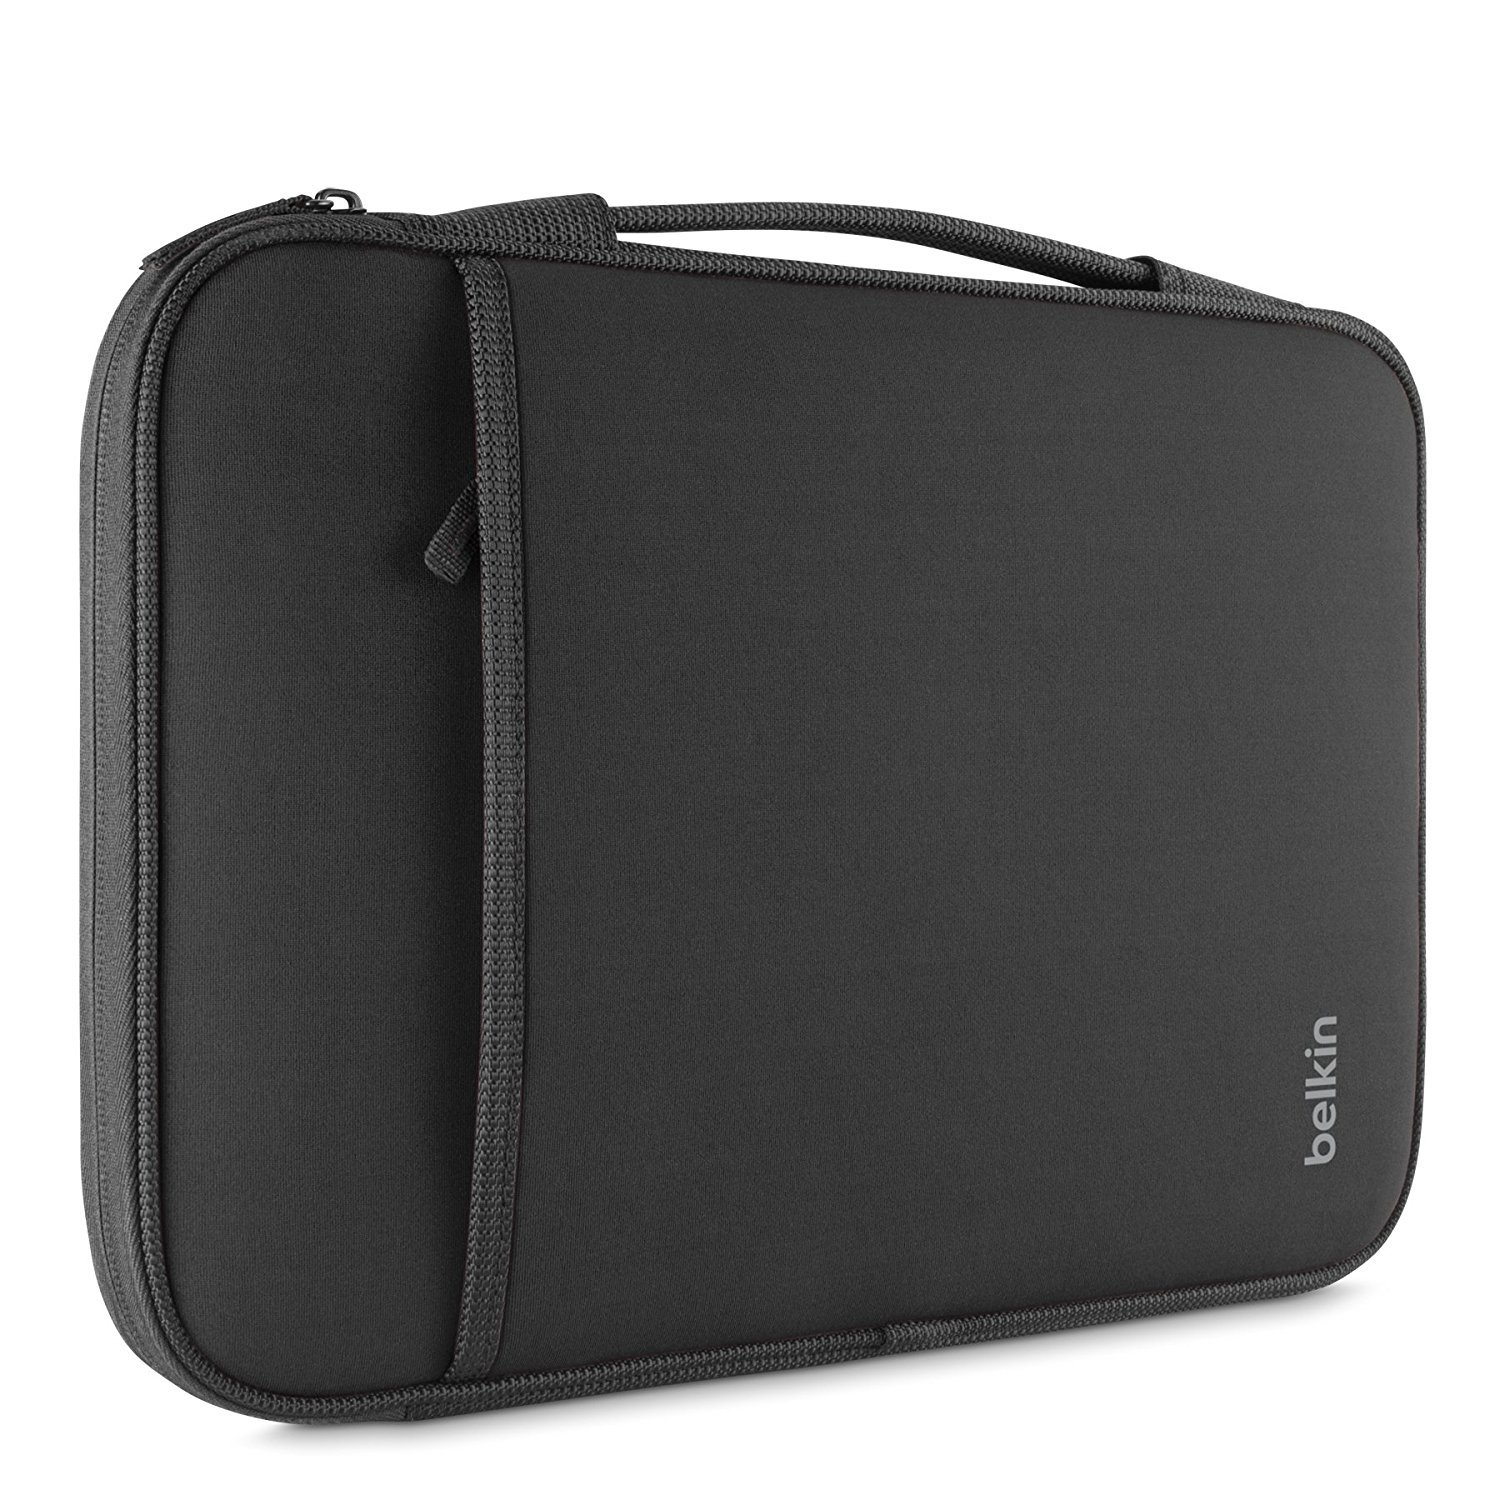 Belkin B2B064-C00 Sleeve for 13-Inch Laptops and Chromebook, Compatible with iPad Pro and Most 13-Inch Laptops/Notebooks (Black)